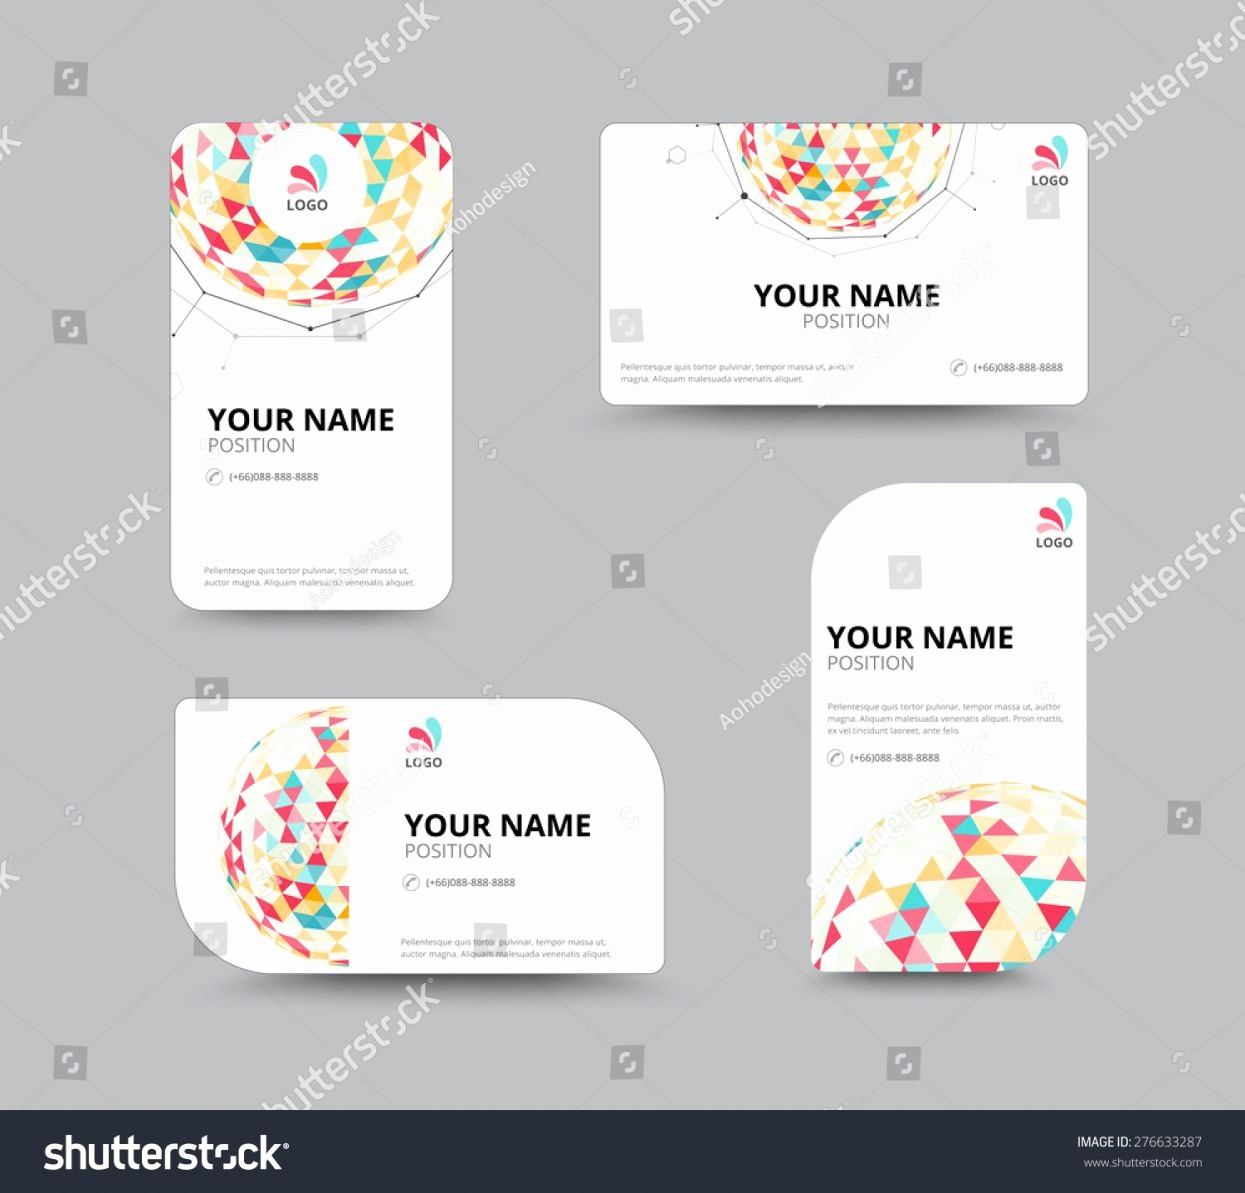 Ms Publisher Business Card Templates Awesome Microsoft Publisher Business Card Templates Image